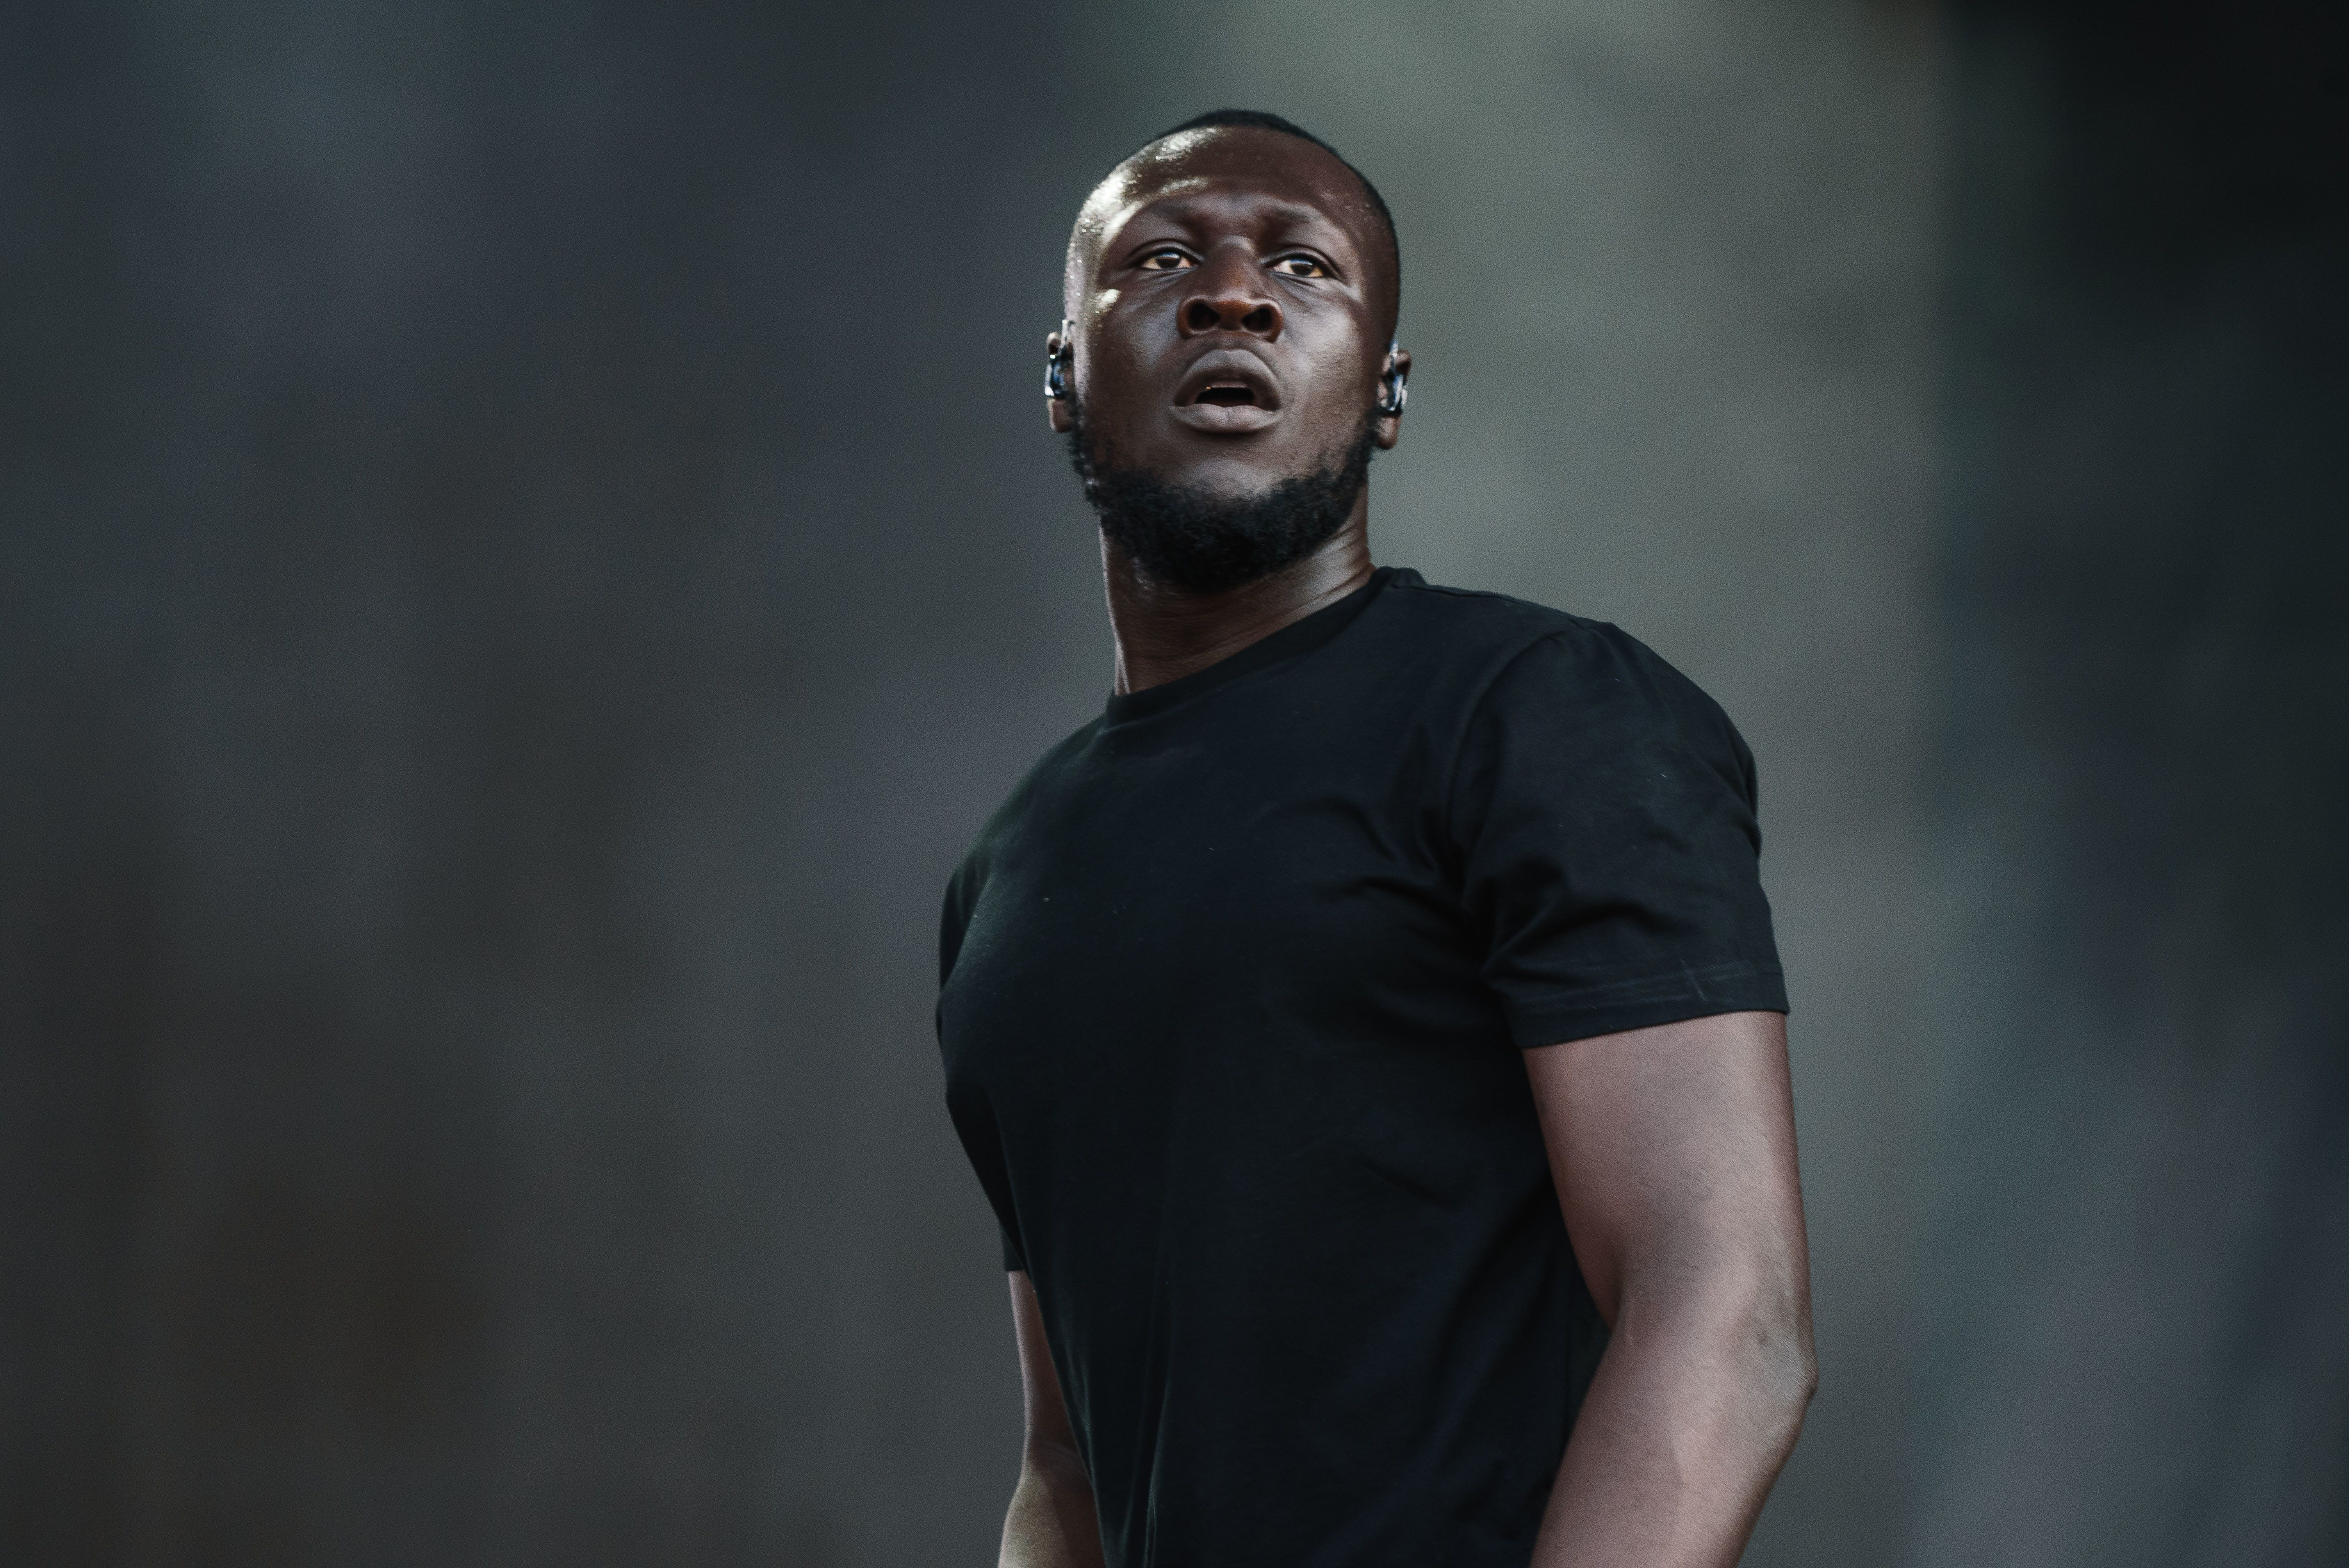 RESULTS DAY: Stormzy Announces Scholarship To Fund Four Black British Students To Go To Cambridge